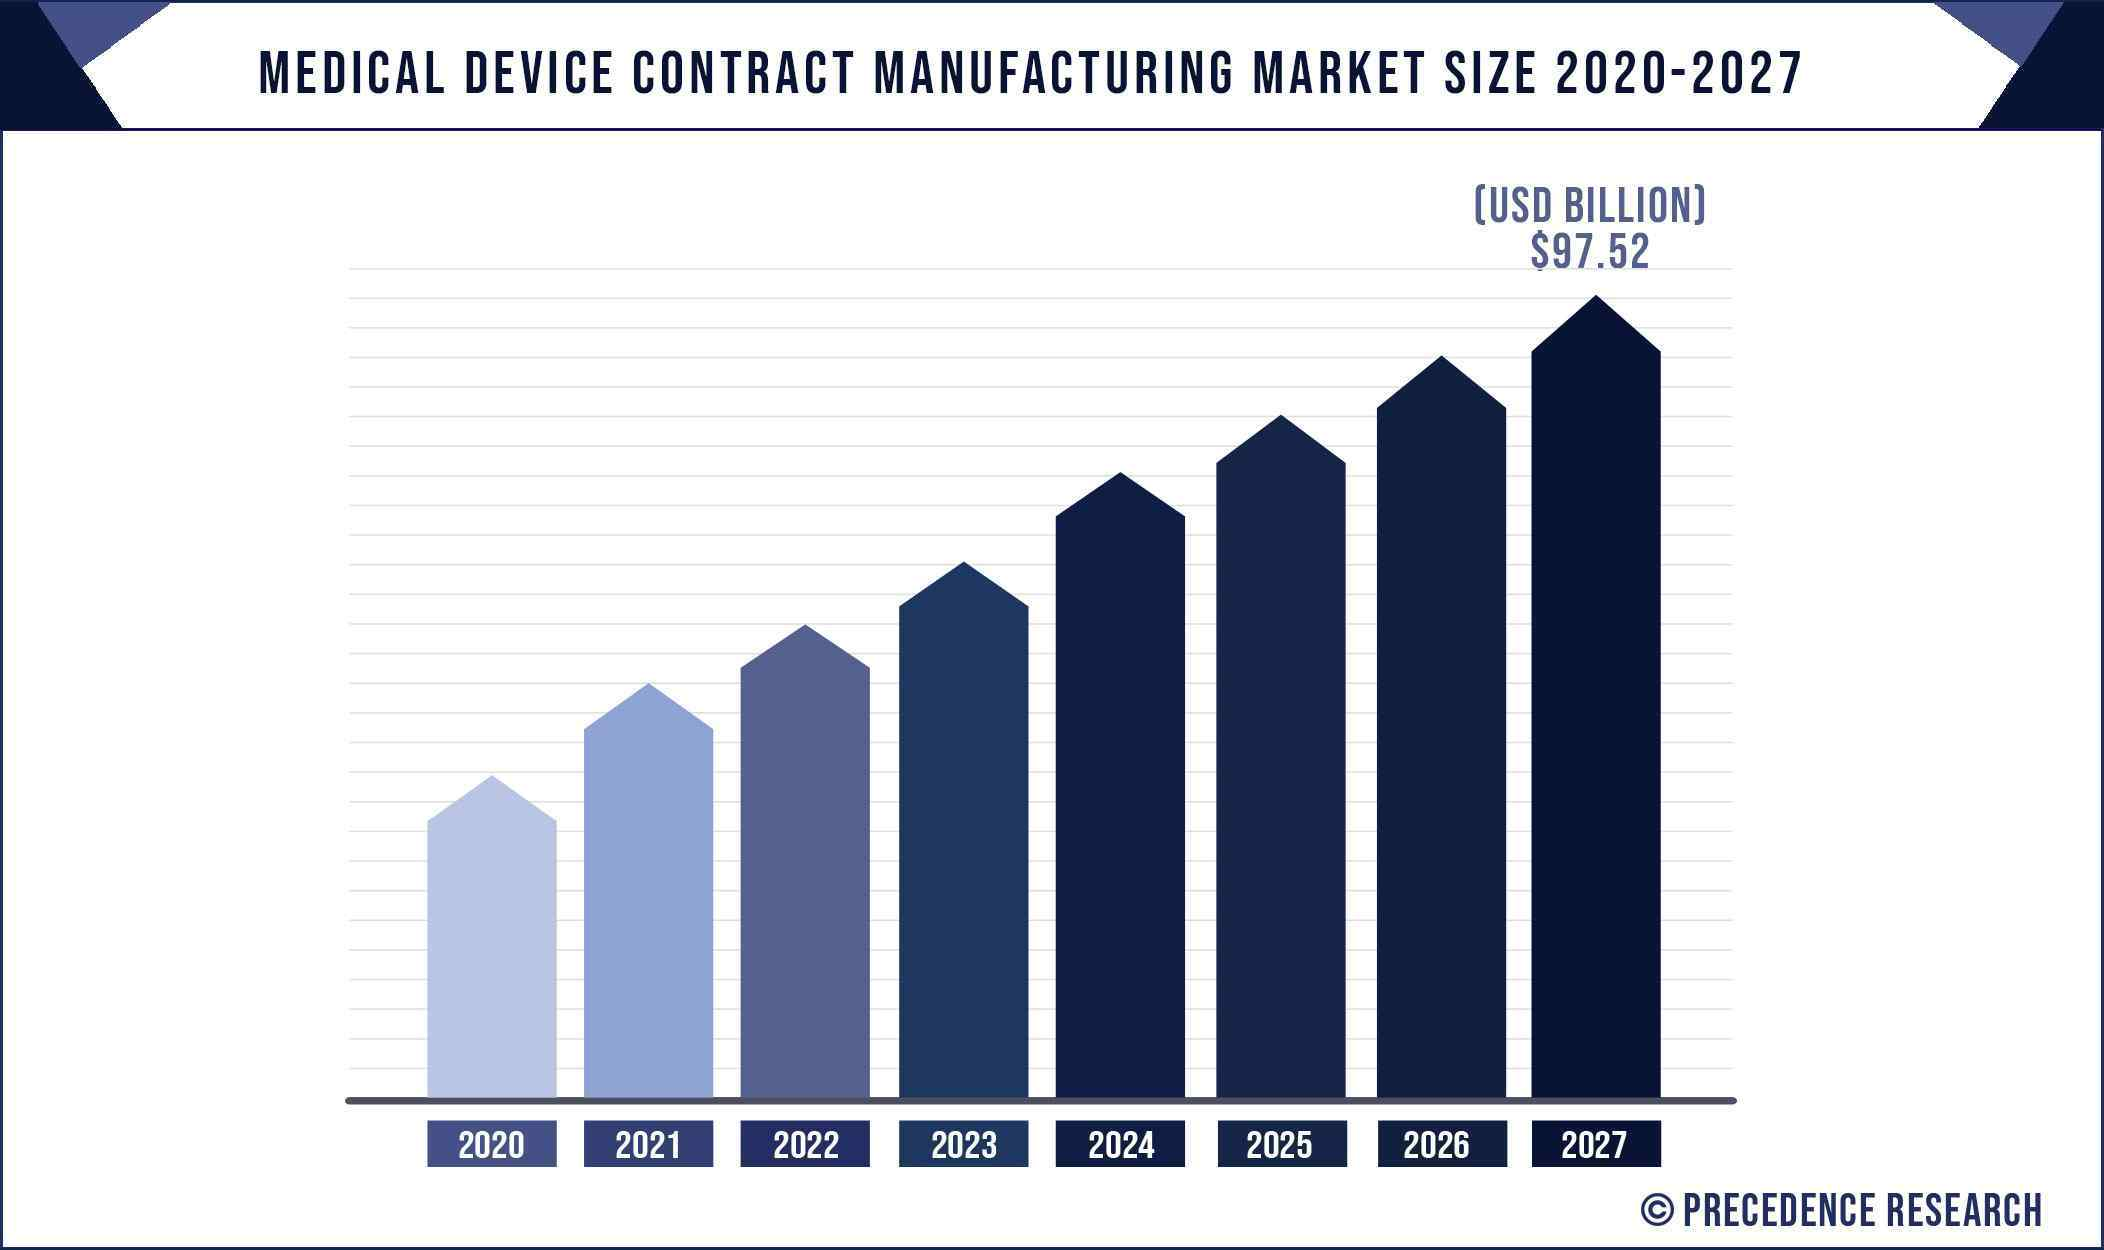 Medical Device Contract Manufacturing Market Size 2020 to 2027